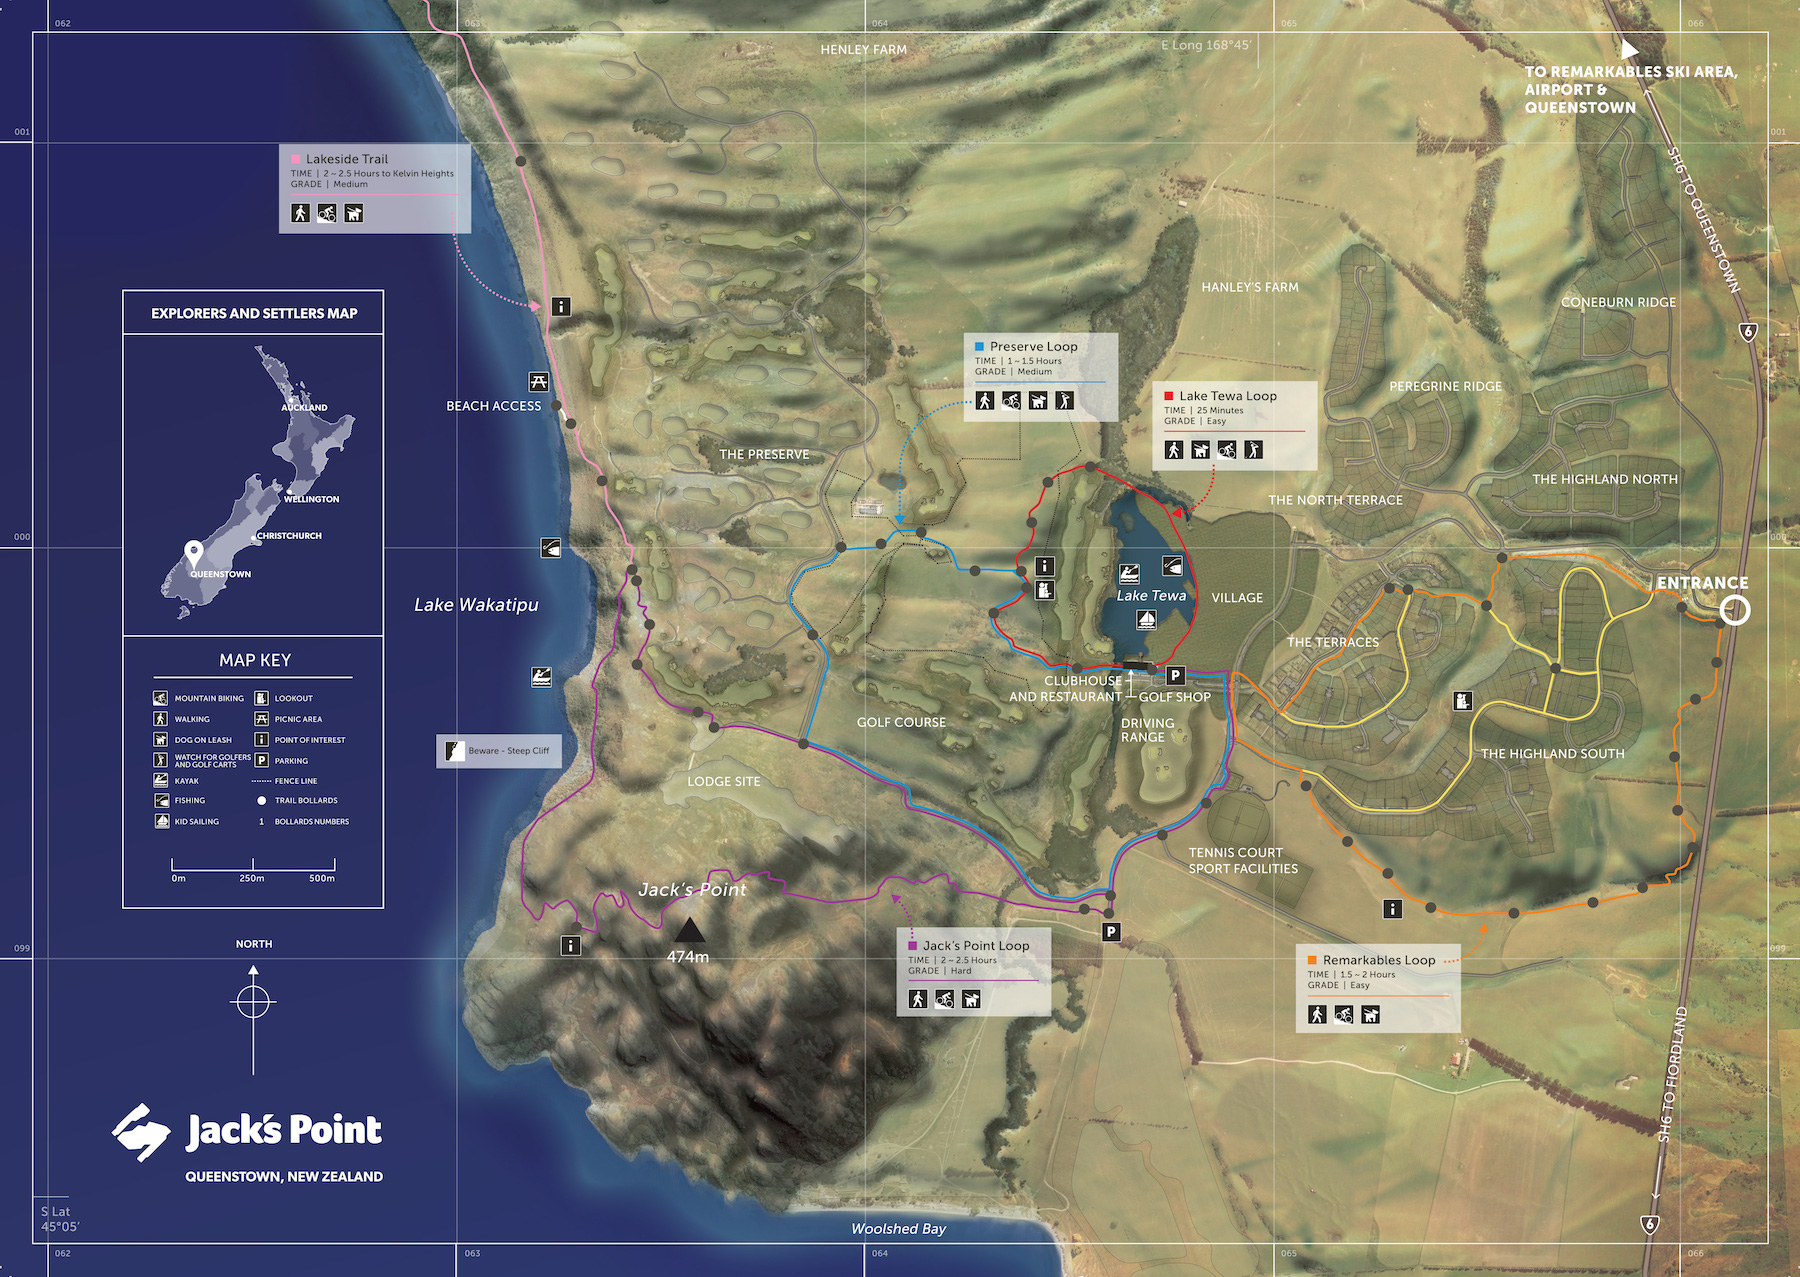 Download this trail map as a PDF